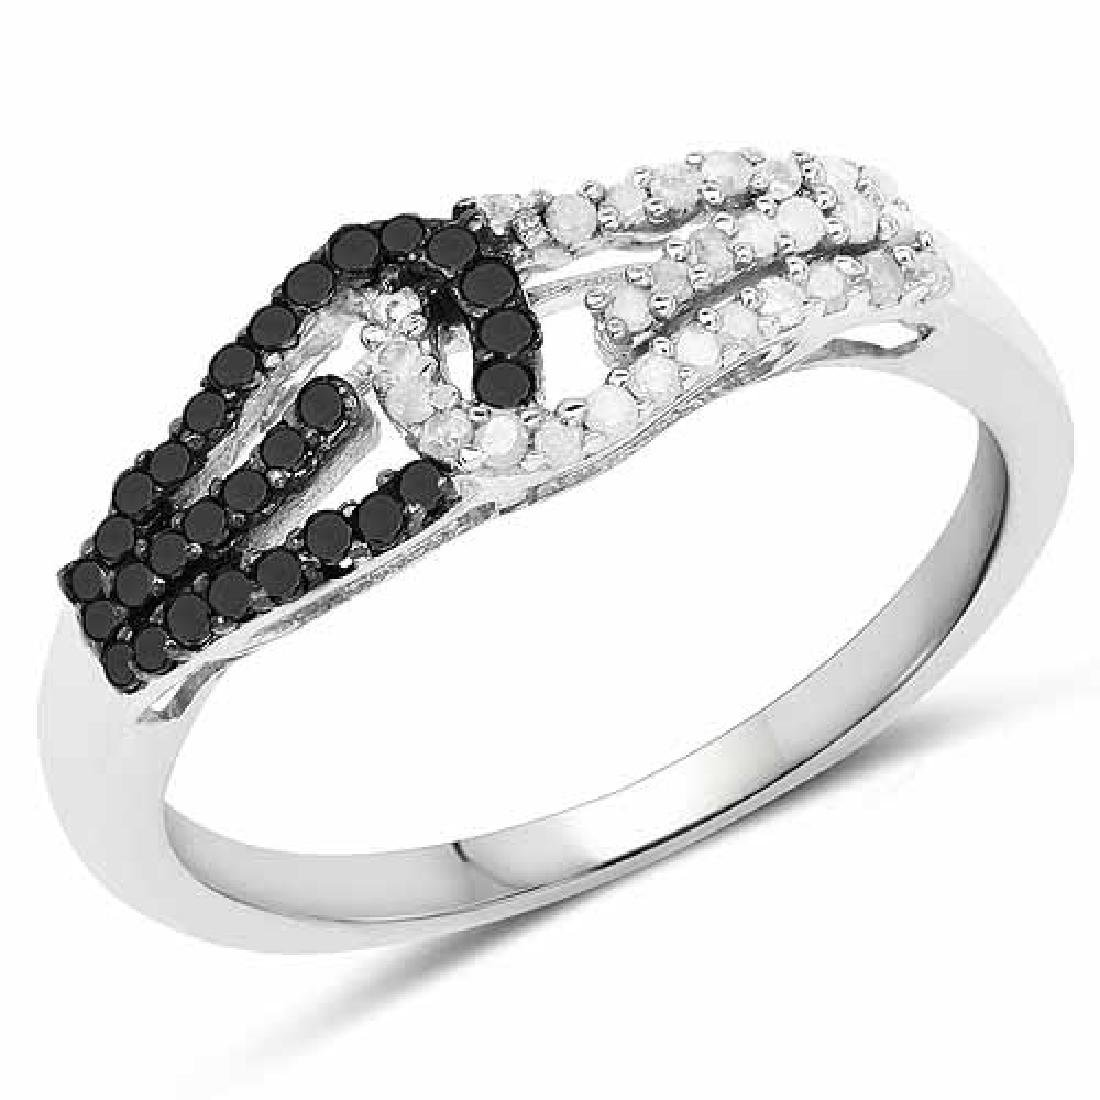 0.33 Carat Genuine White Diamond and Black Diamond .925